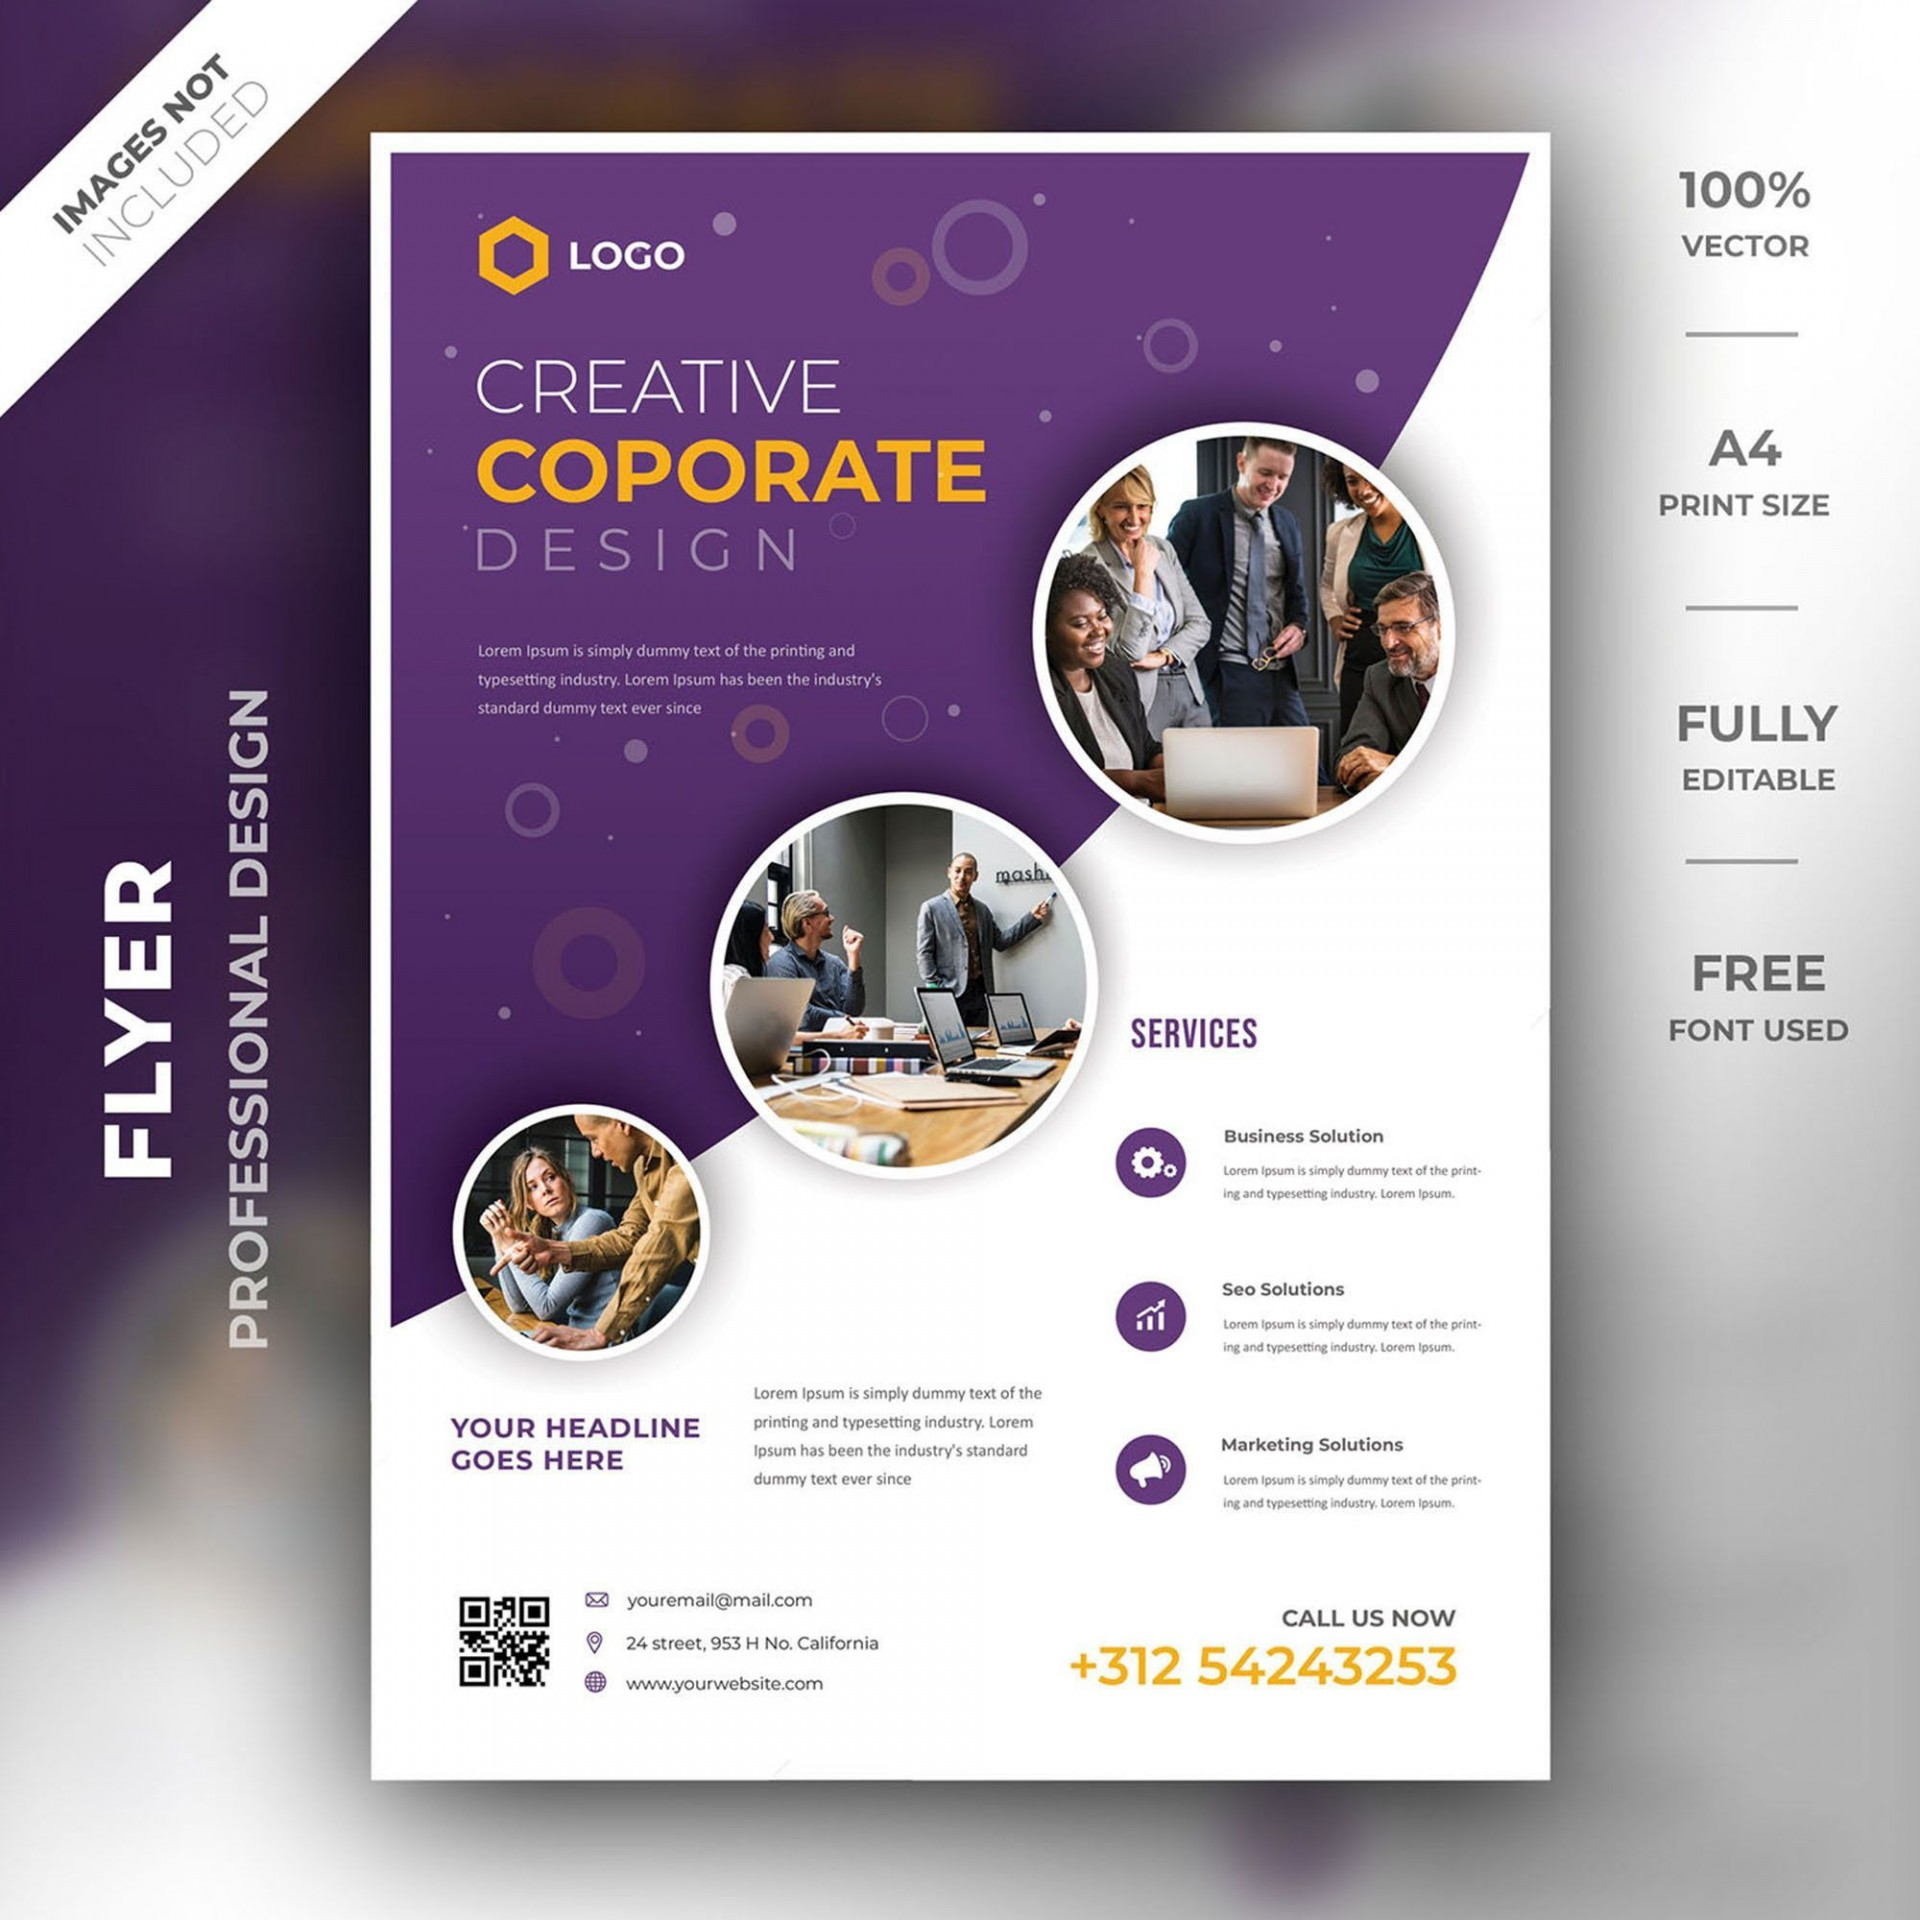 000 Stunning Brochure Template Photoshop Cs6 Free Download Highest Clarity 1920